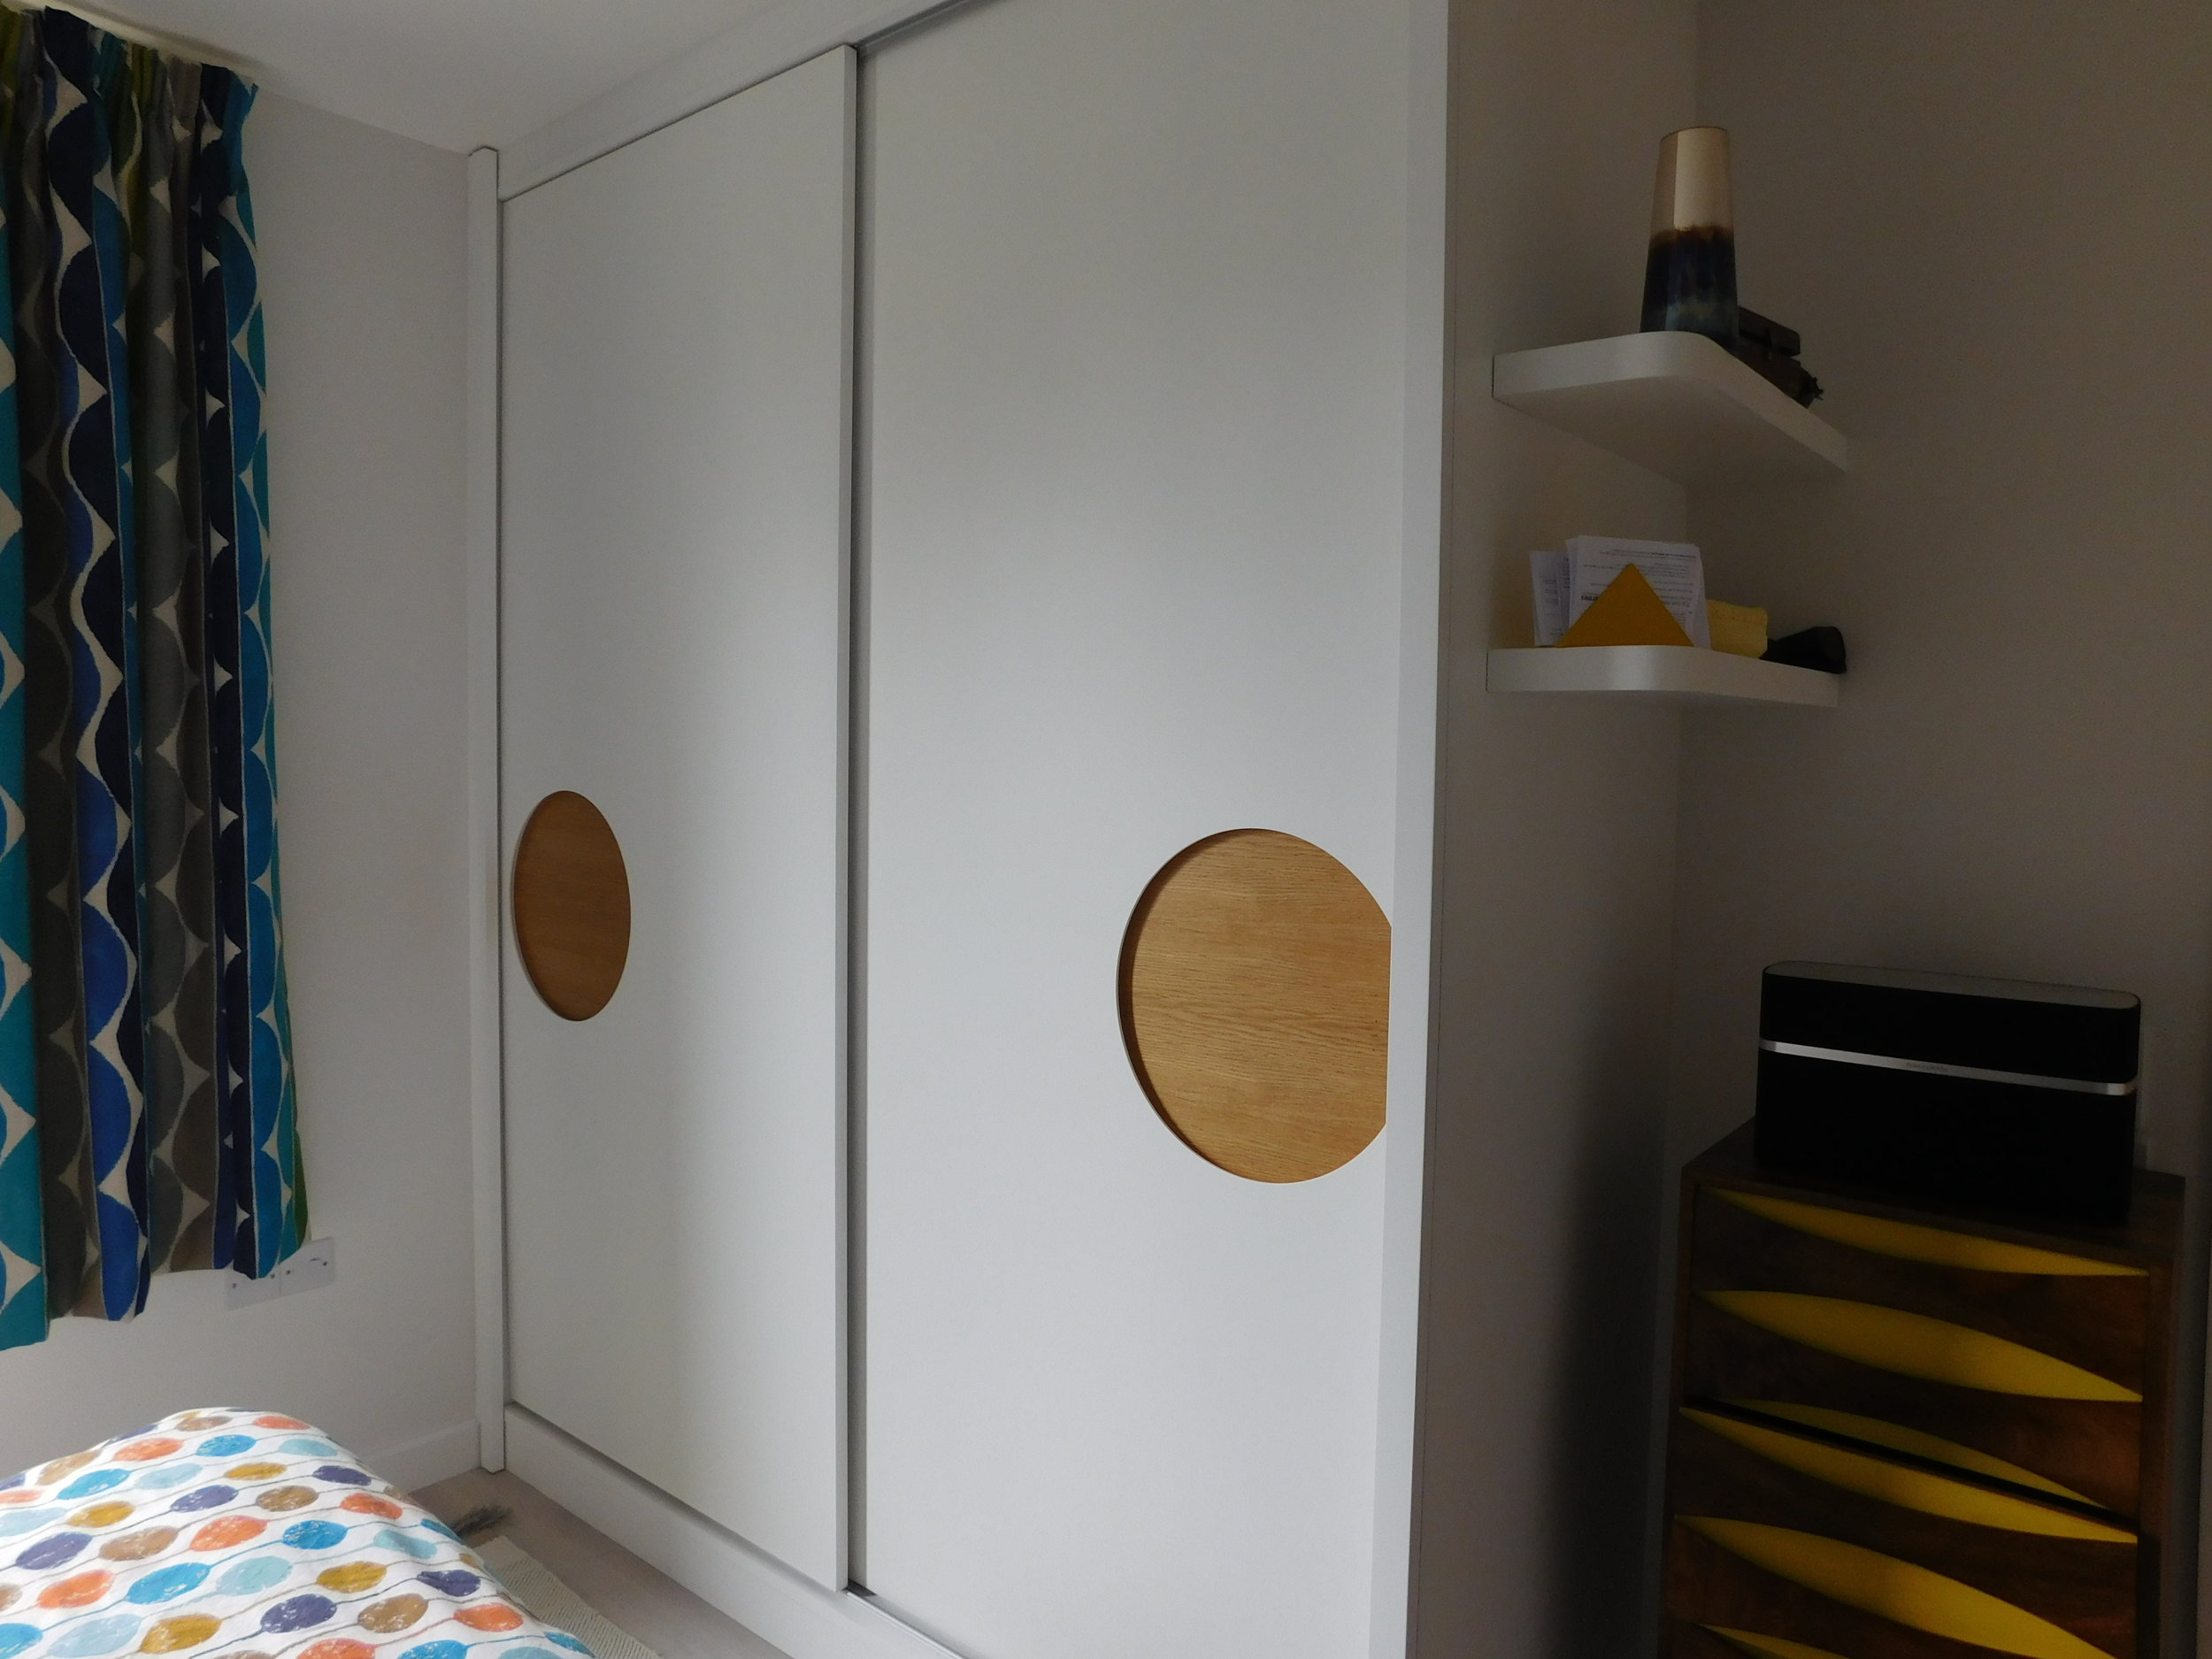 Sliding doors with Oak insets